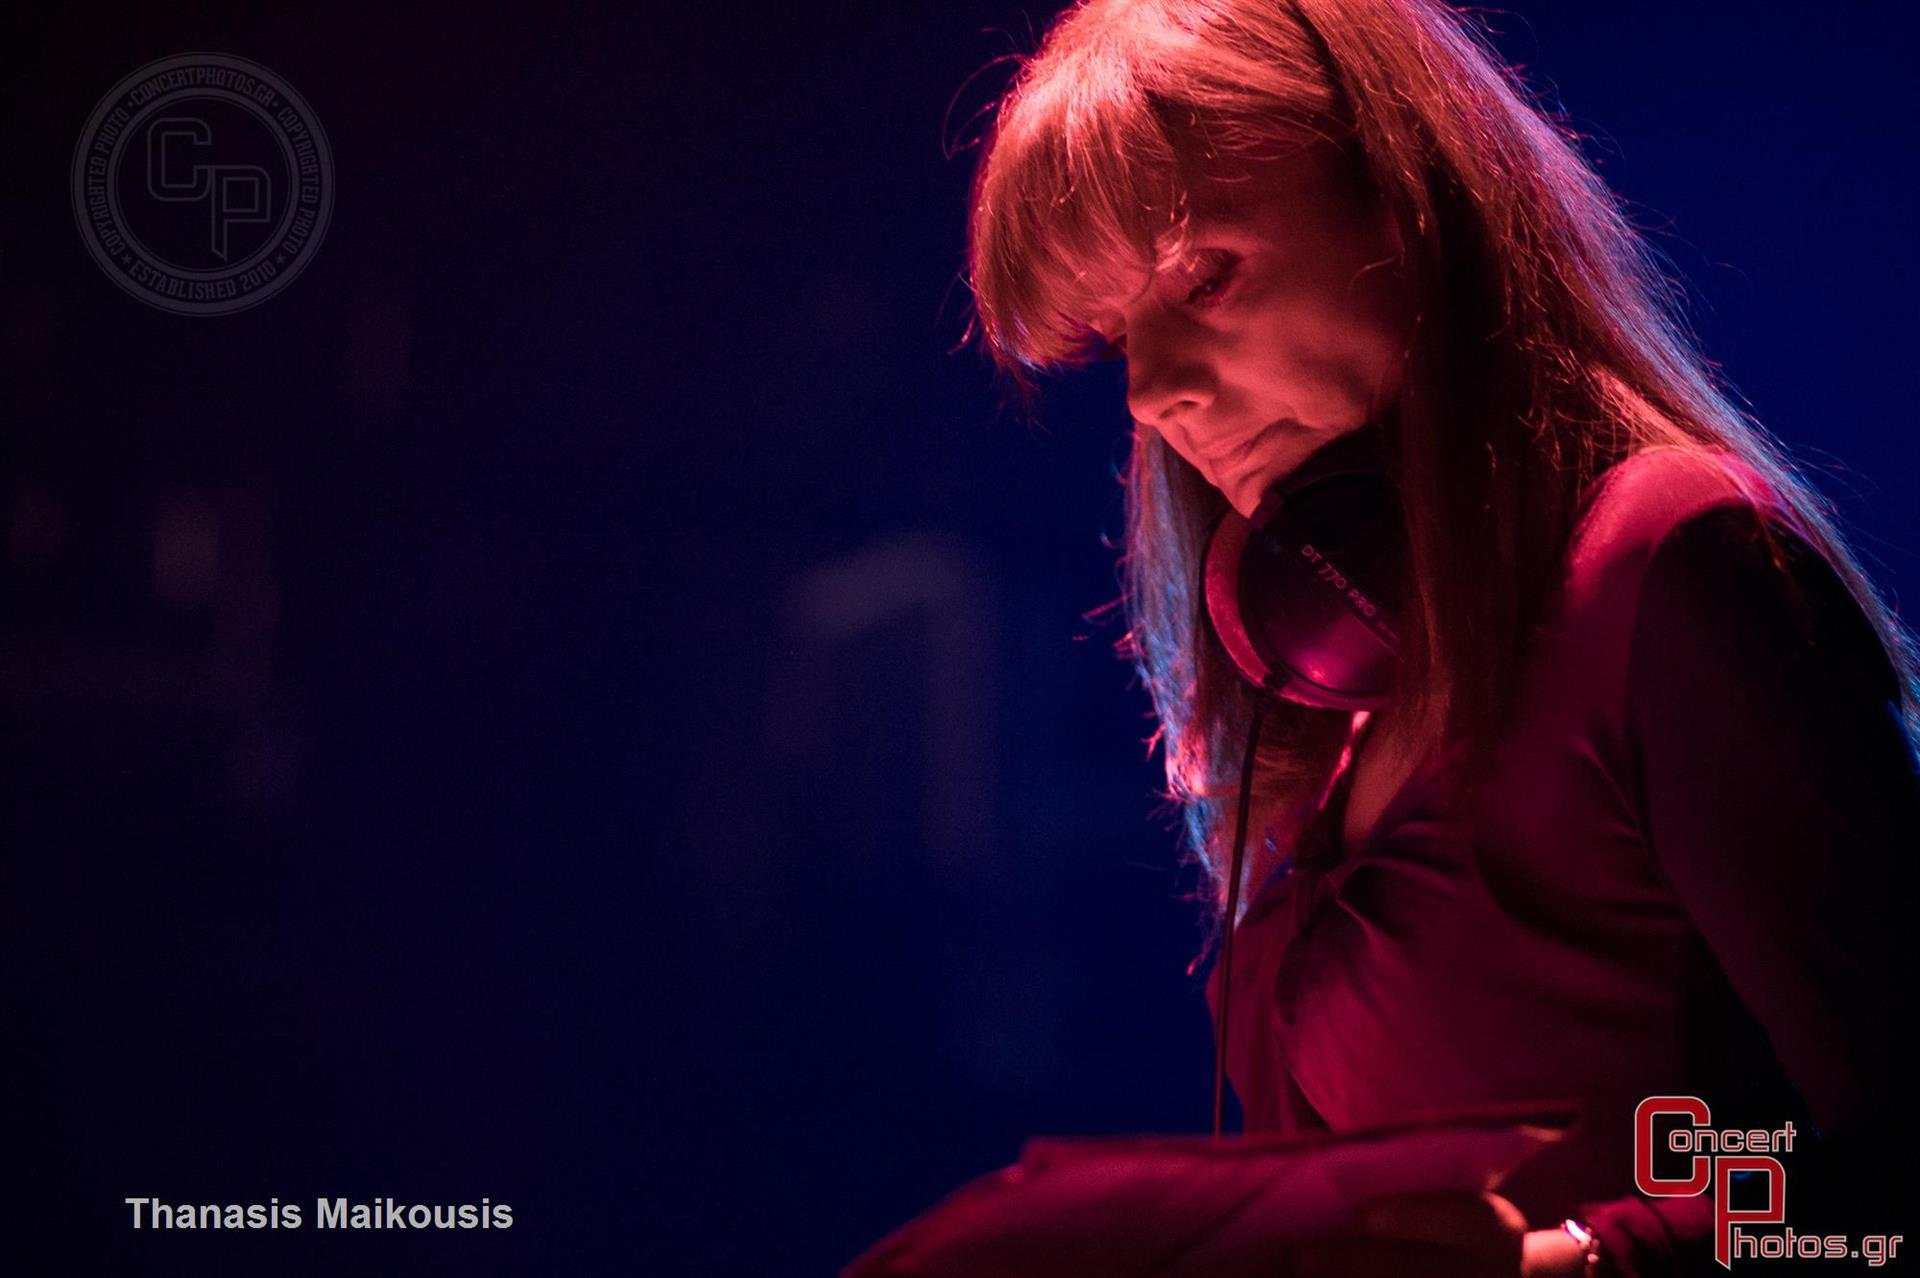 Nuvelle Vague -Nuvelle Vague Fuzz photographer: Thanasis Maikousis - ConcertPhotos - 20141224_2328_02